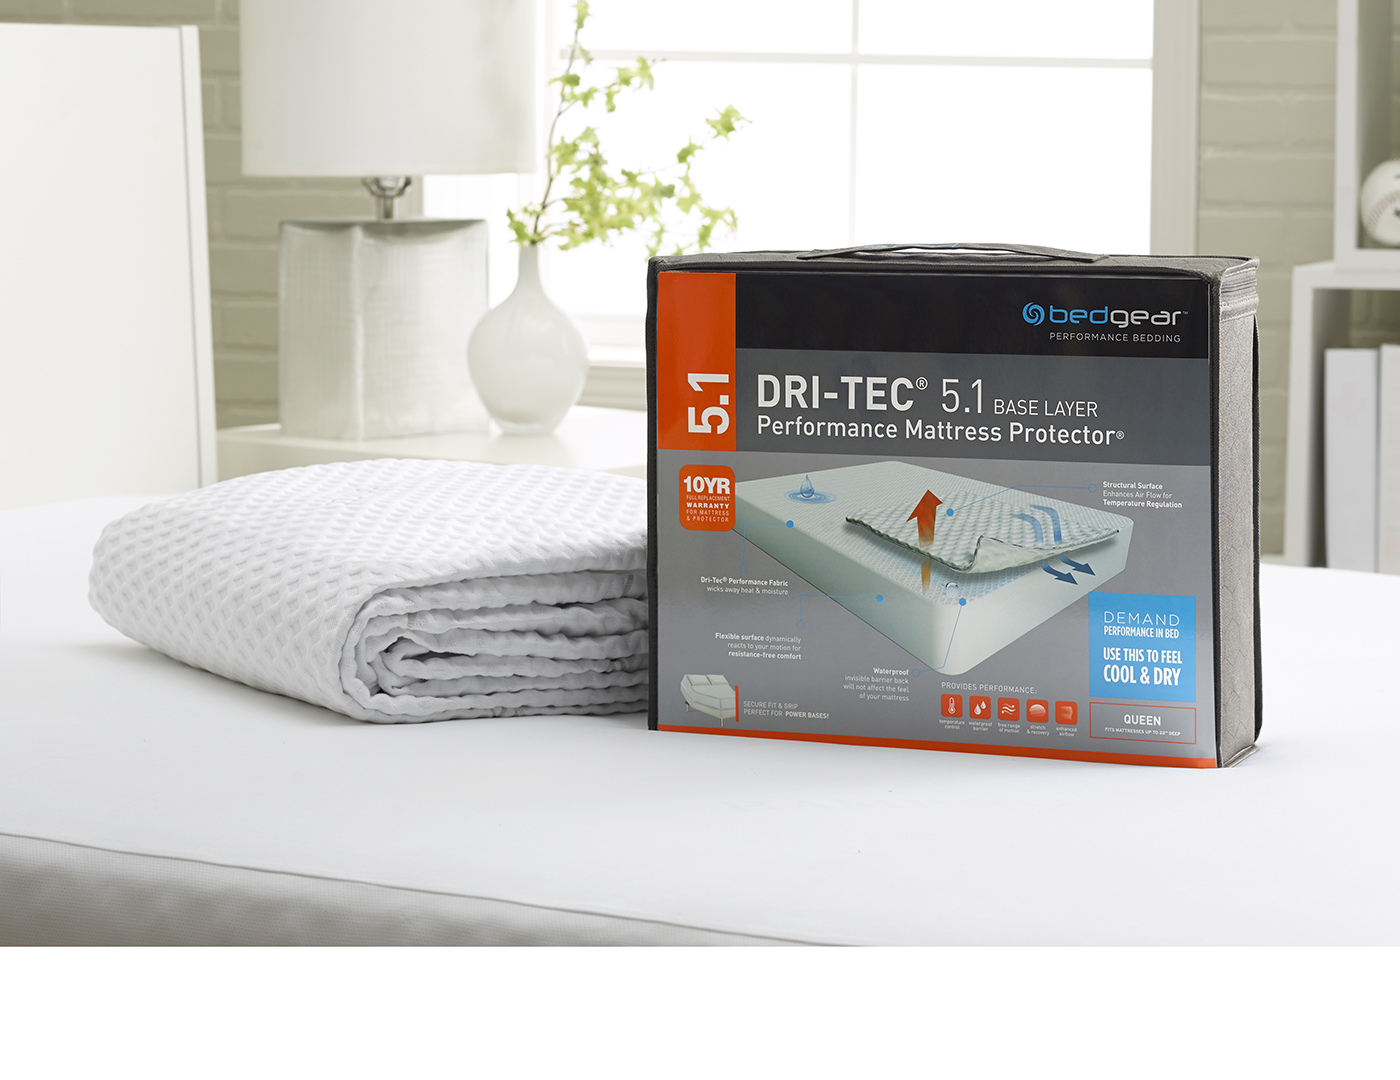 bedgear 5.1 Dri-Tec Moisture Wicking Cal. King Mattress Protector